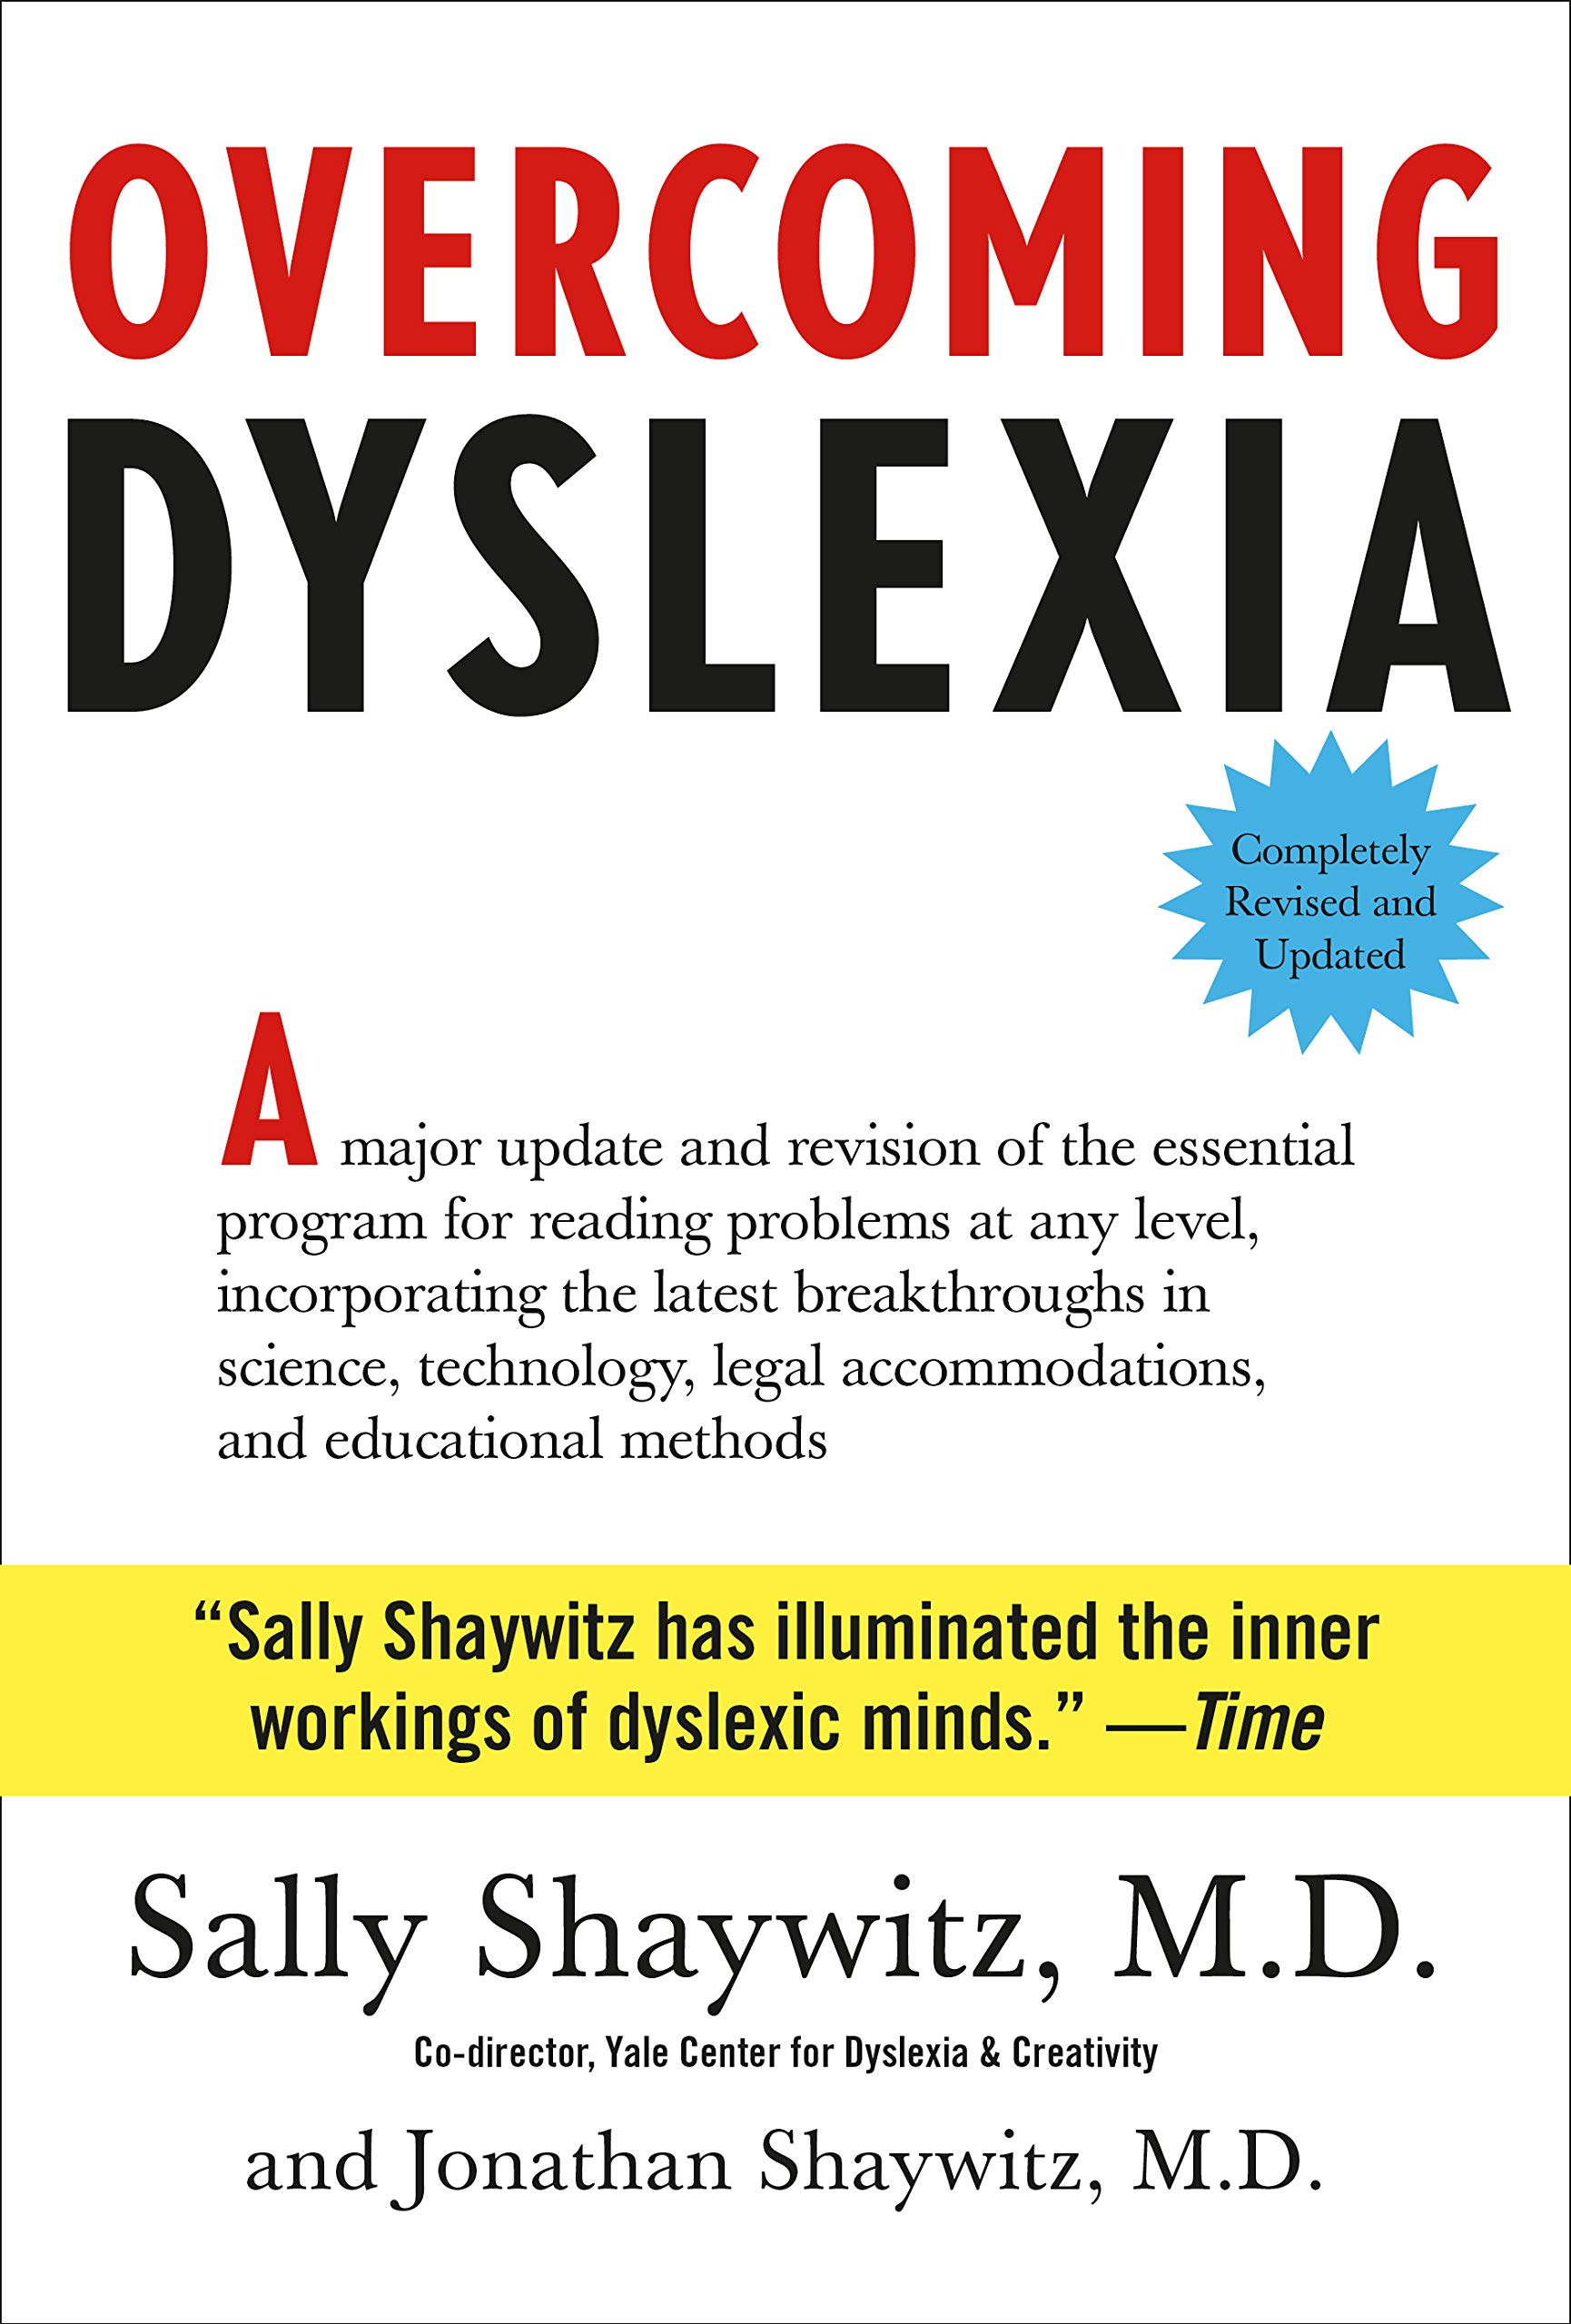 Understanding Dyslexia The Yale Center For Dyslexia Creativity >> Buy Overcoming Dyslexia Completely Revised And Updated Book